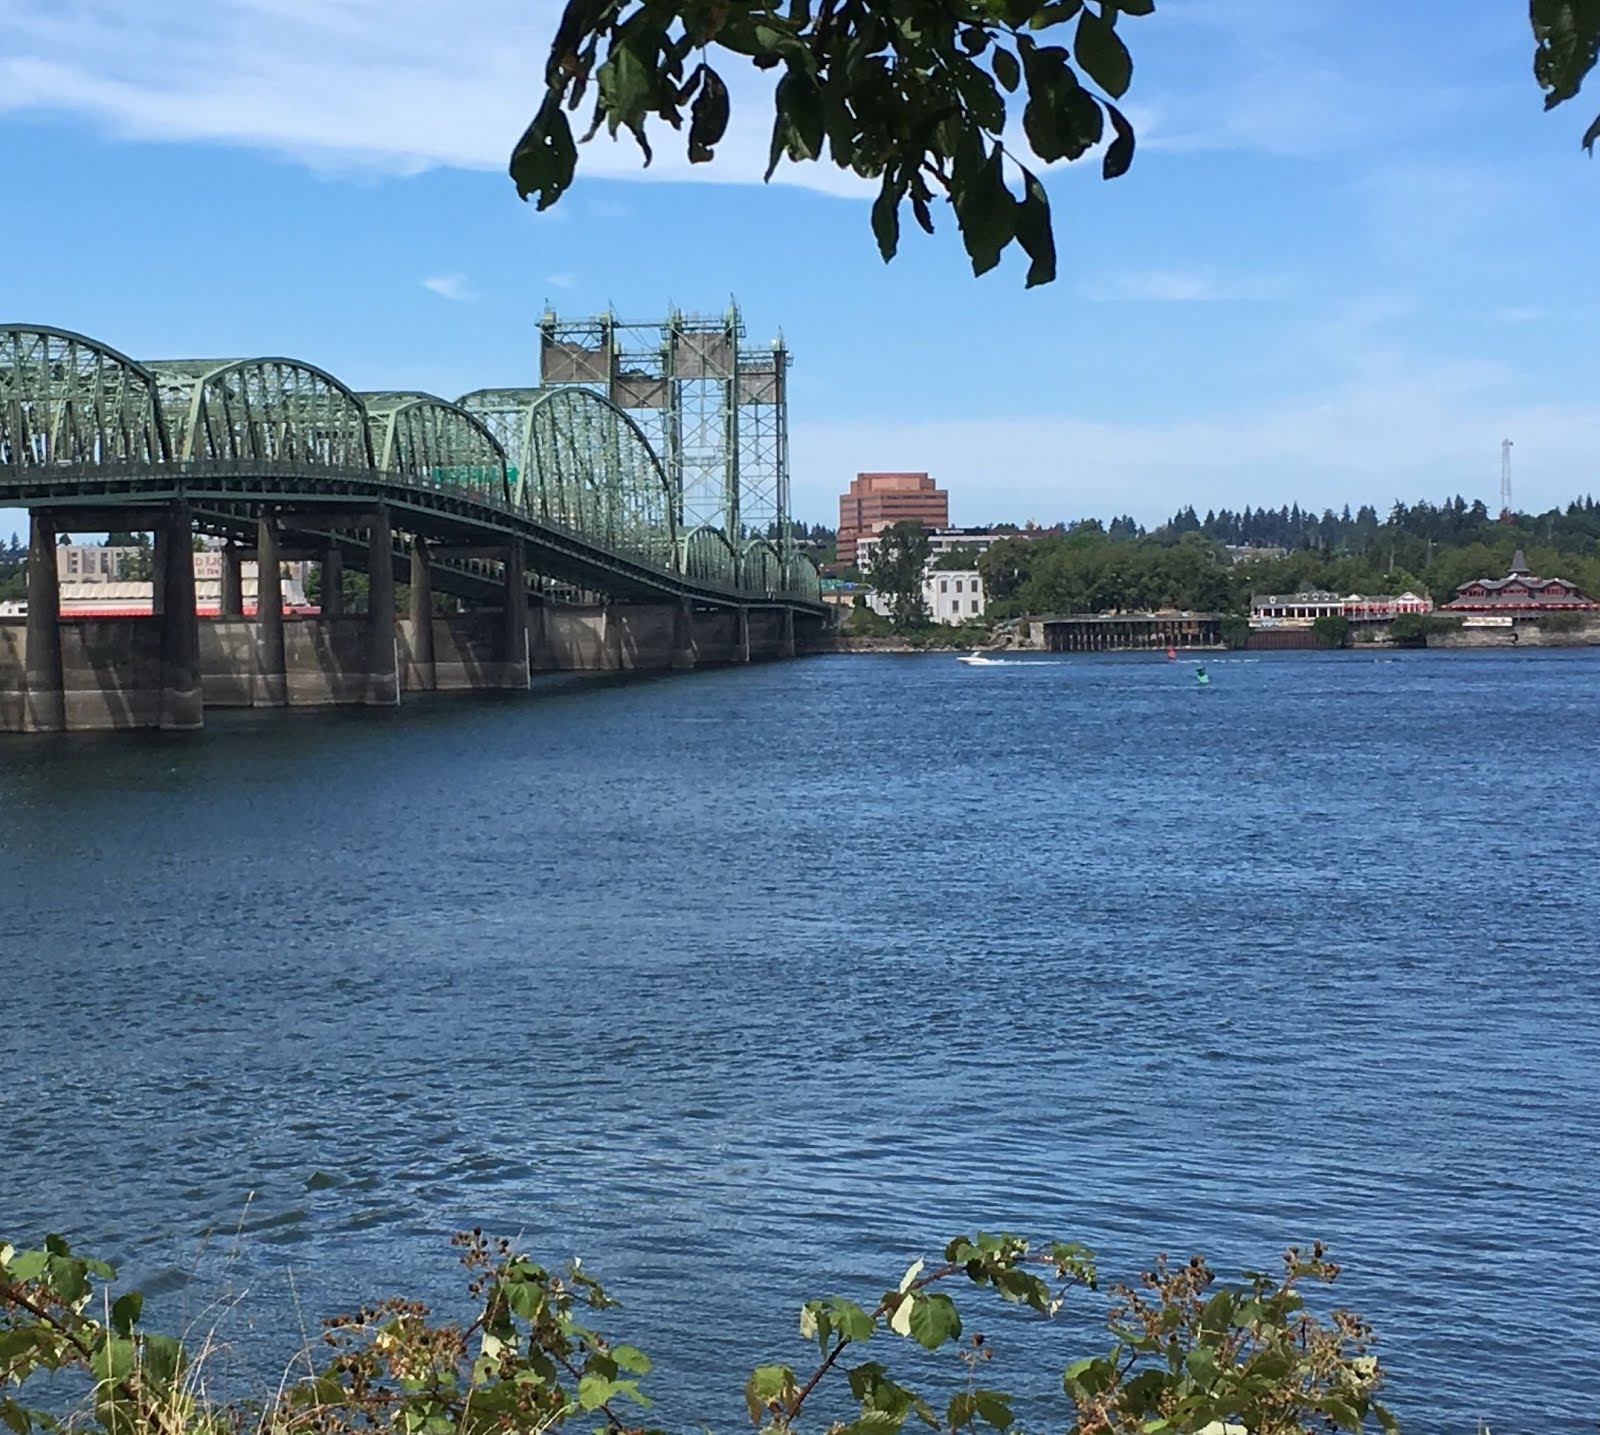 Hayden Island is in the Columbia River, here looking north towards the Washington side.